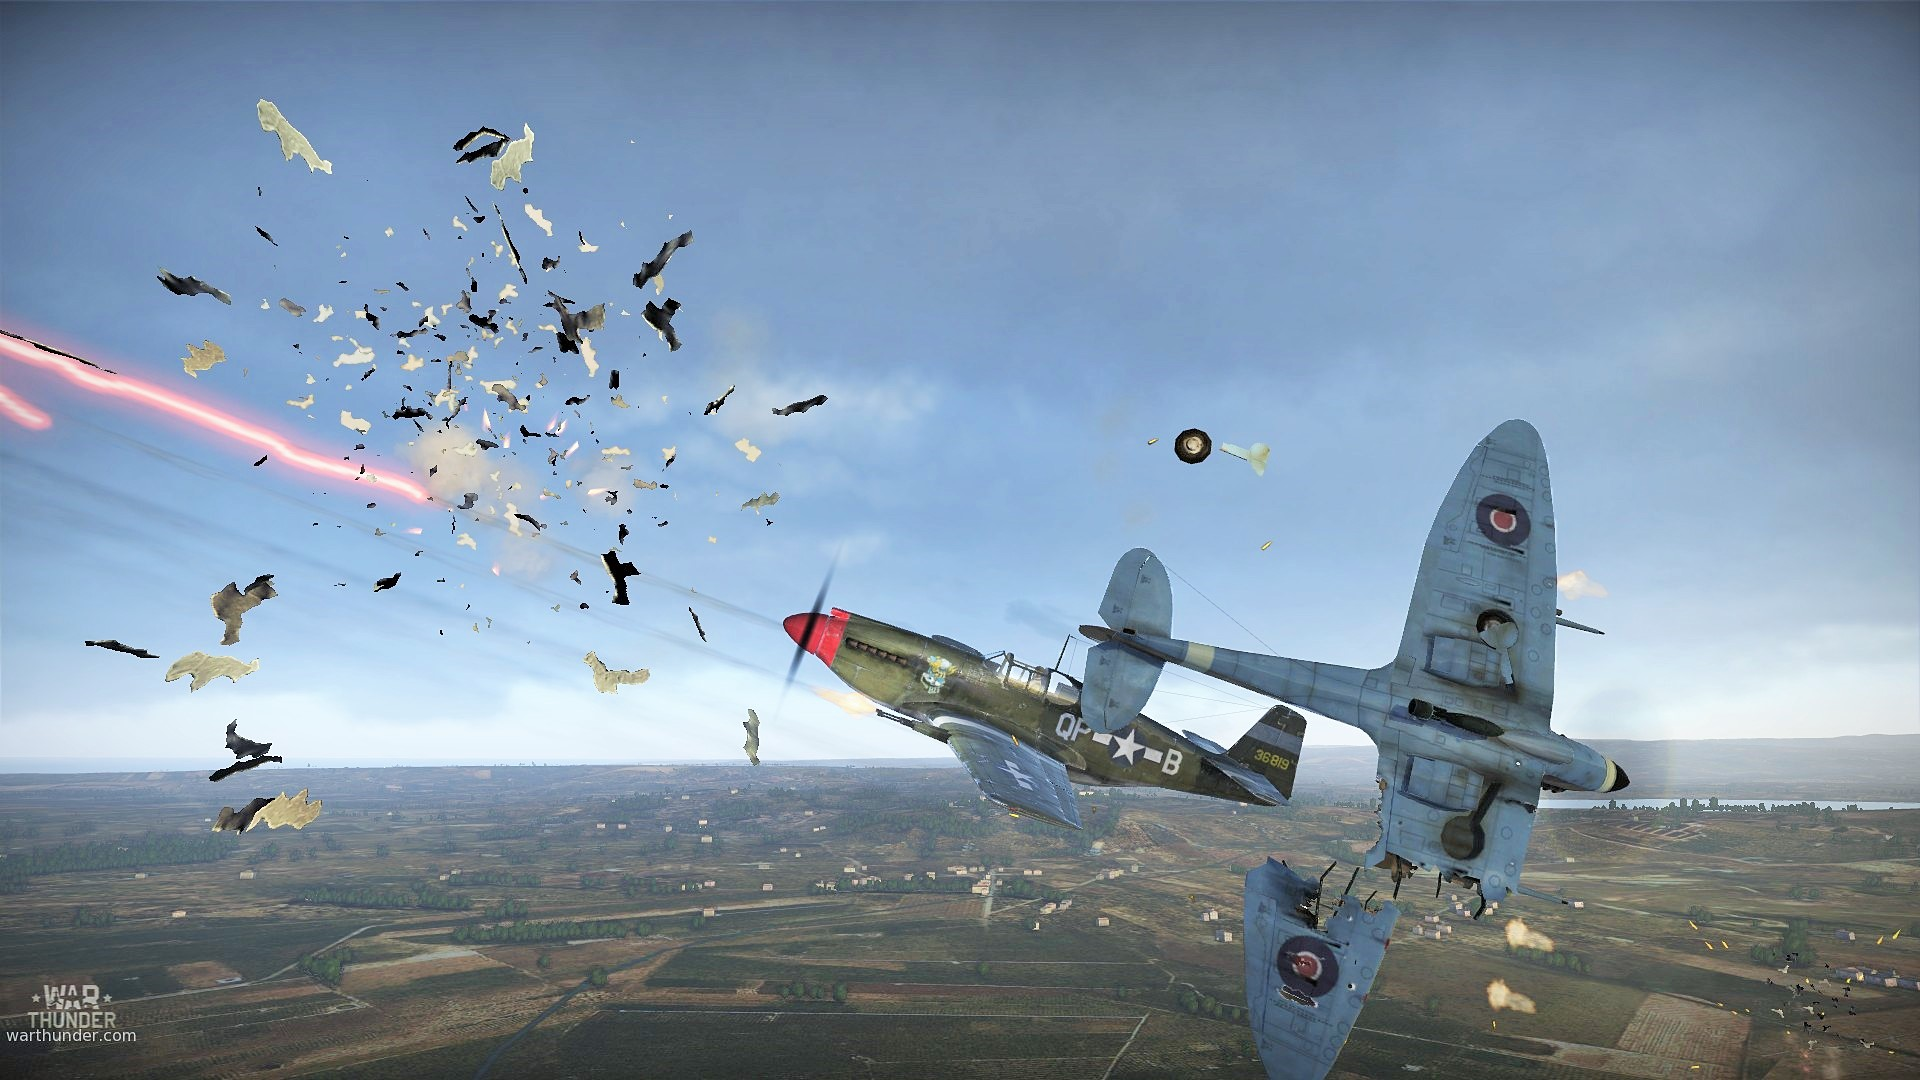 War thunder close call (10)